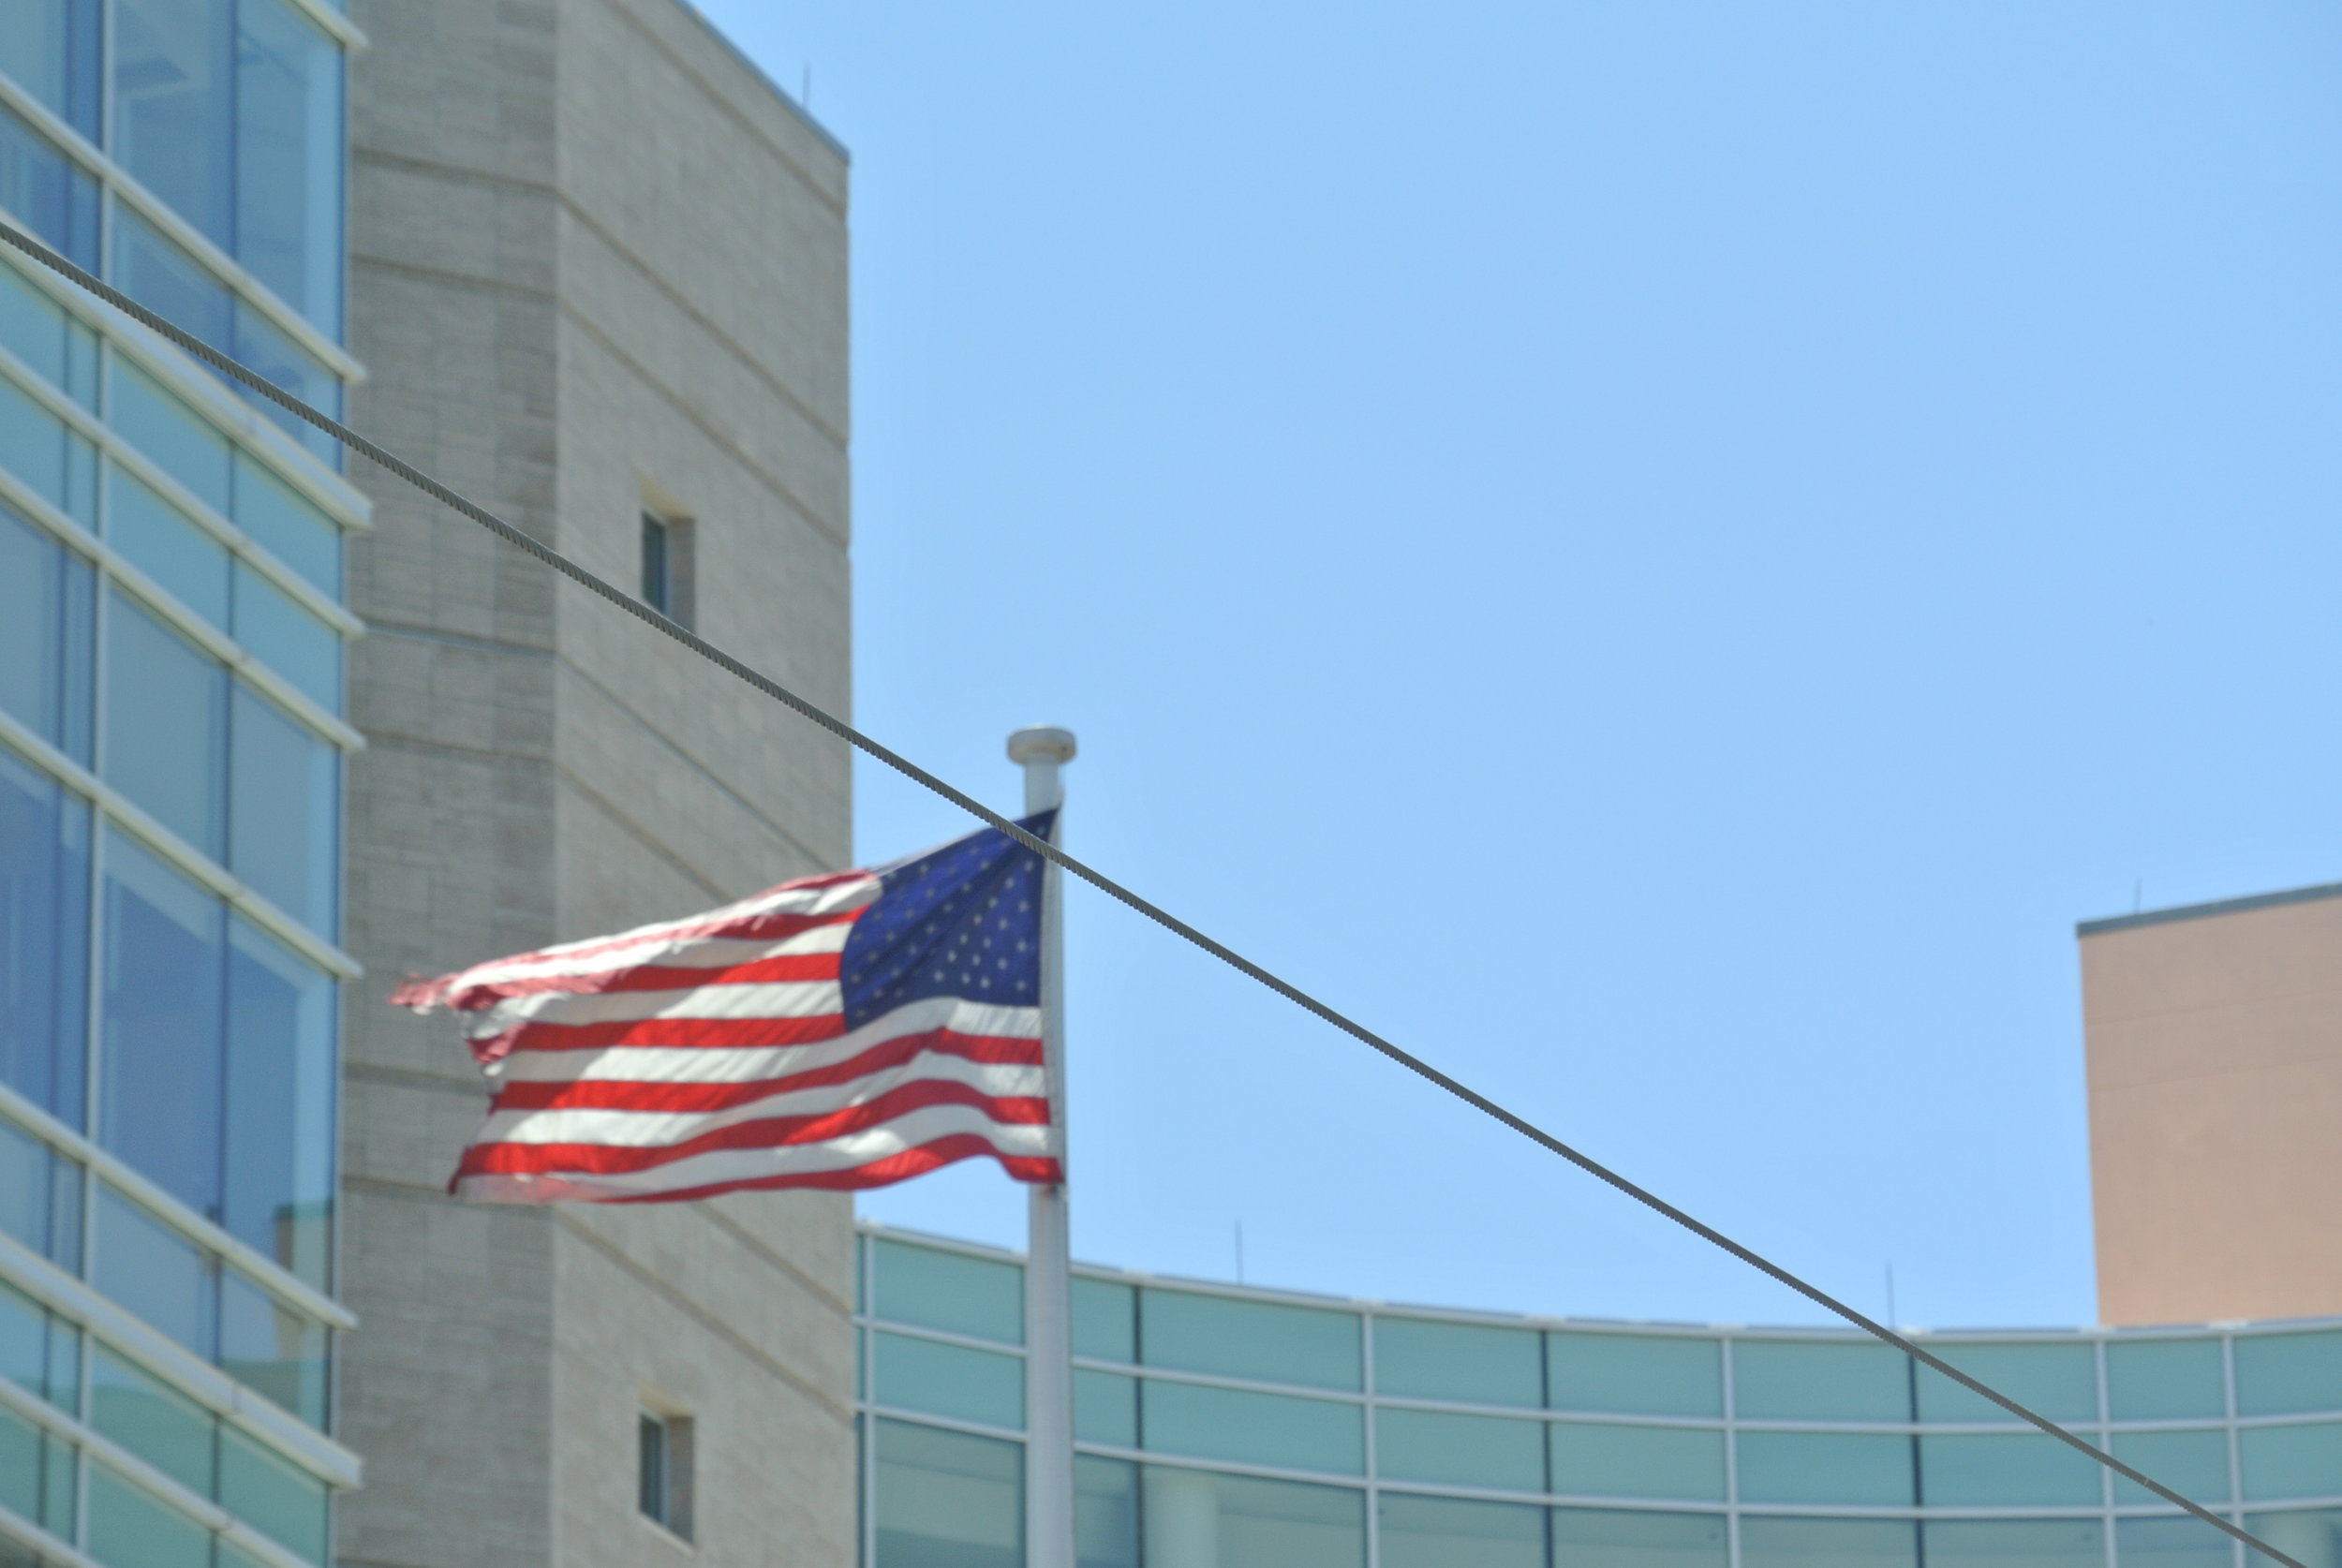 Desert gusts tear at the flag outside of the United States District Court building. Tucson, Arizona; 17 May 2019. ©Pamela Kerpius